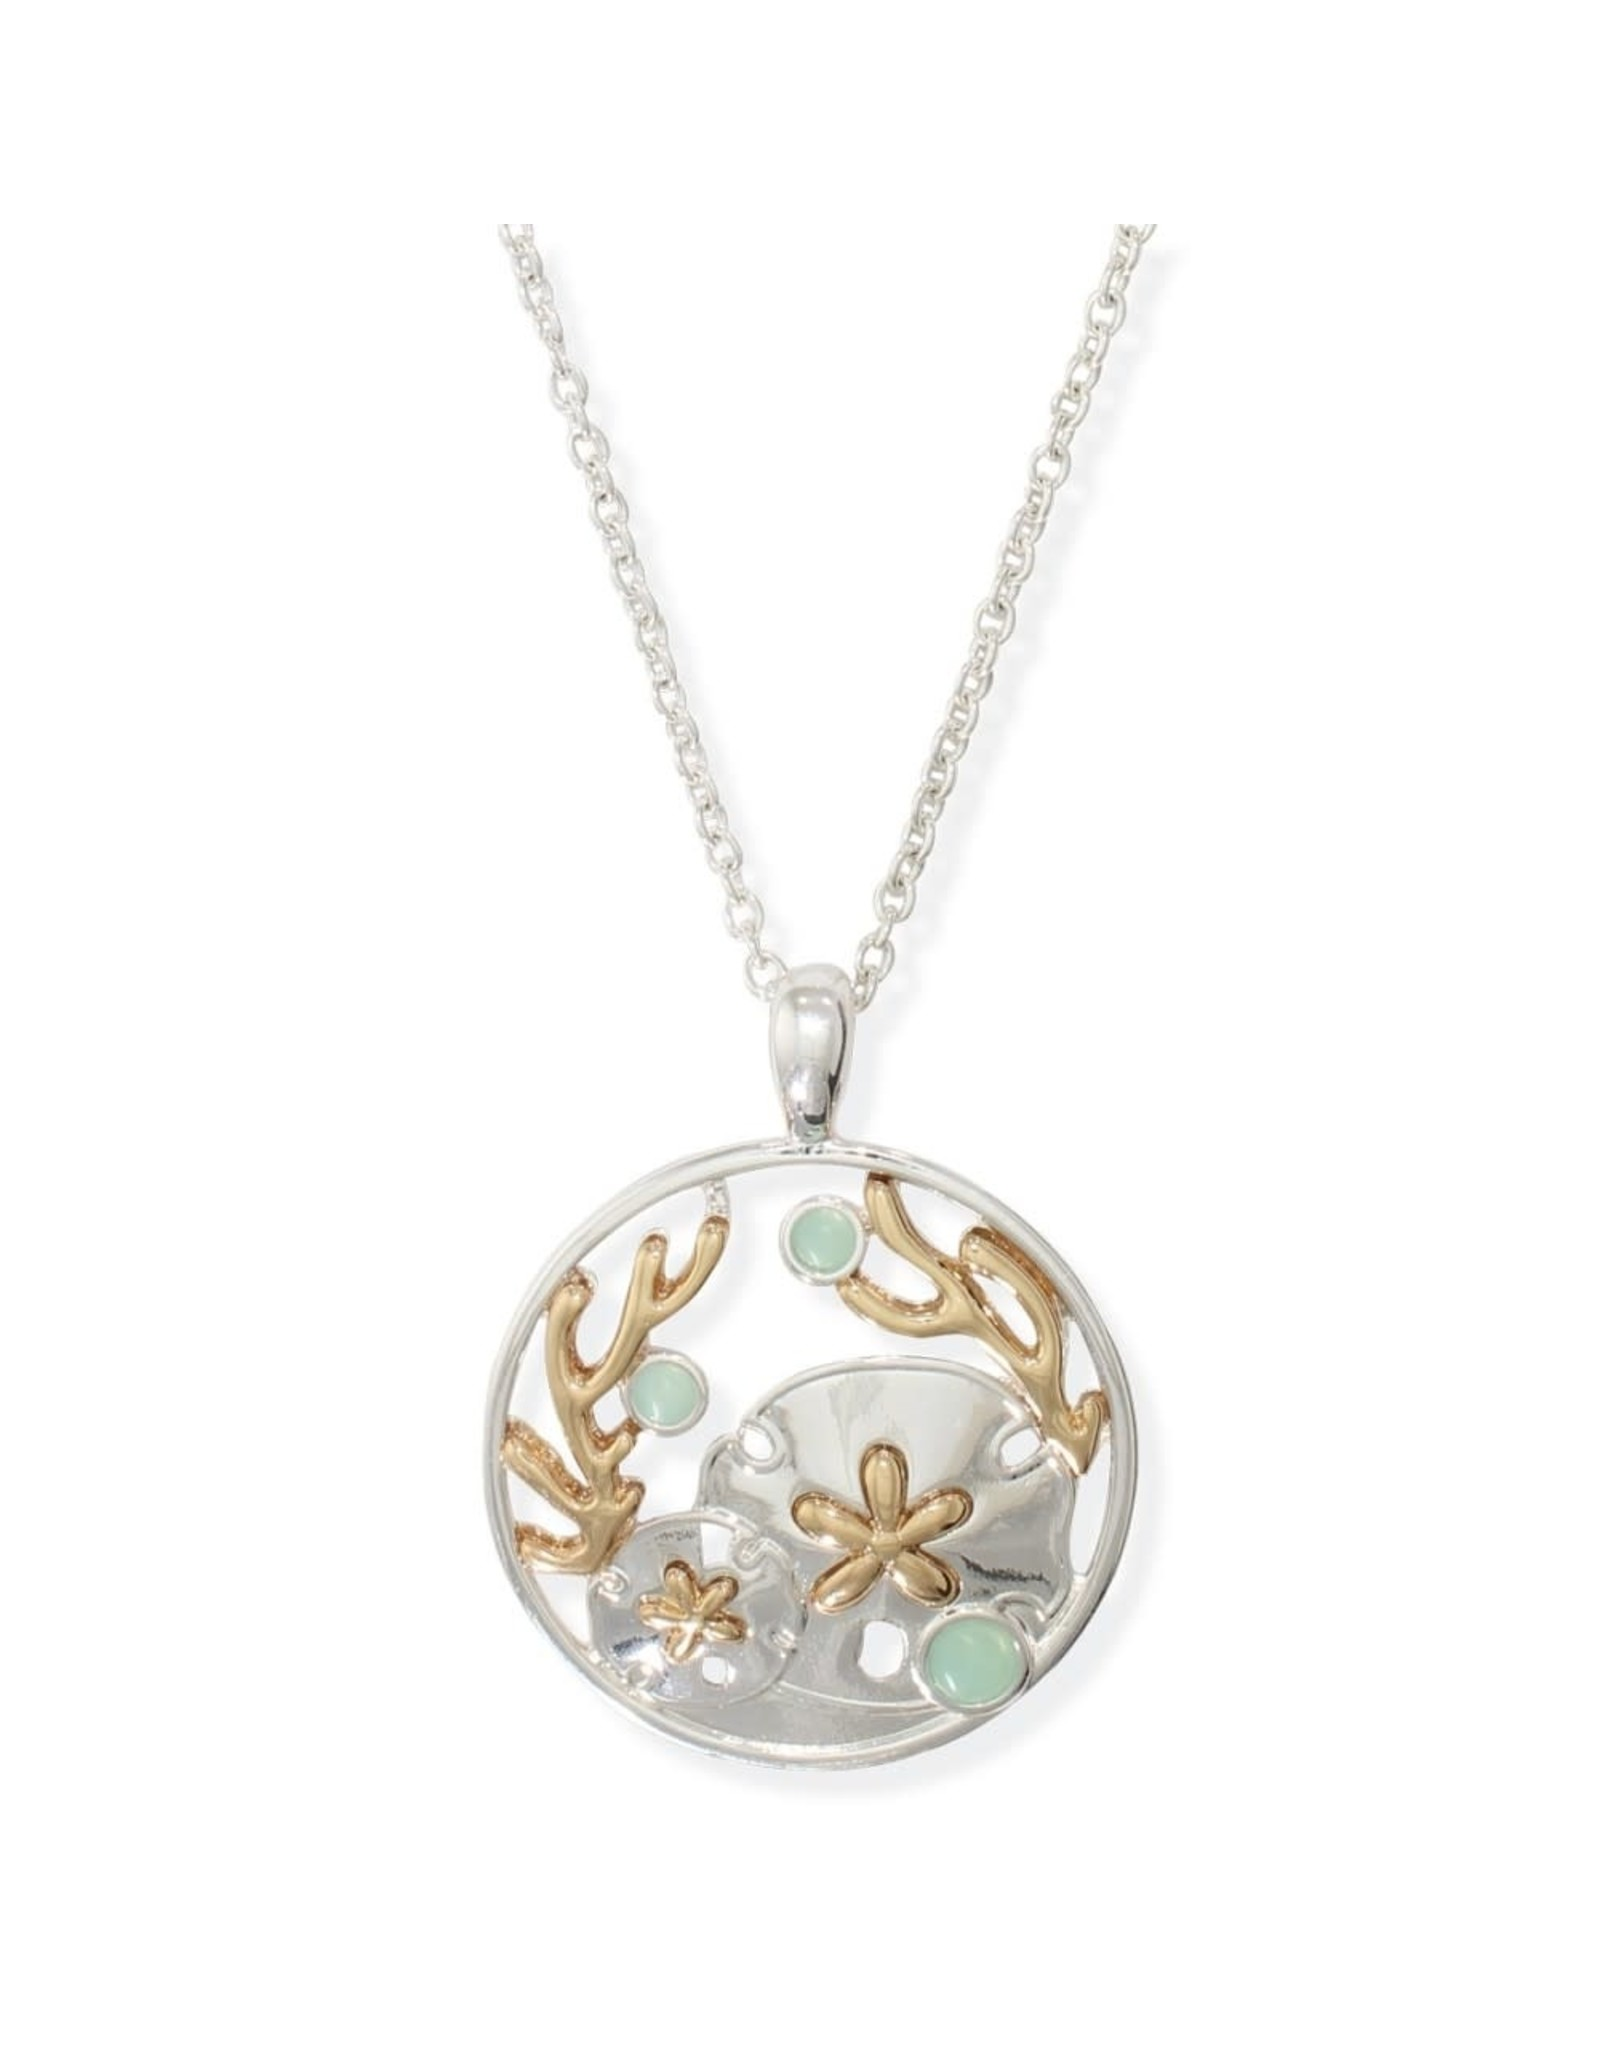 Periwinkle by Barlow 17 Inch Two Tone Sand Dollar Mint Accent Necklace